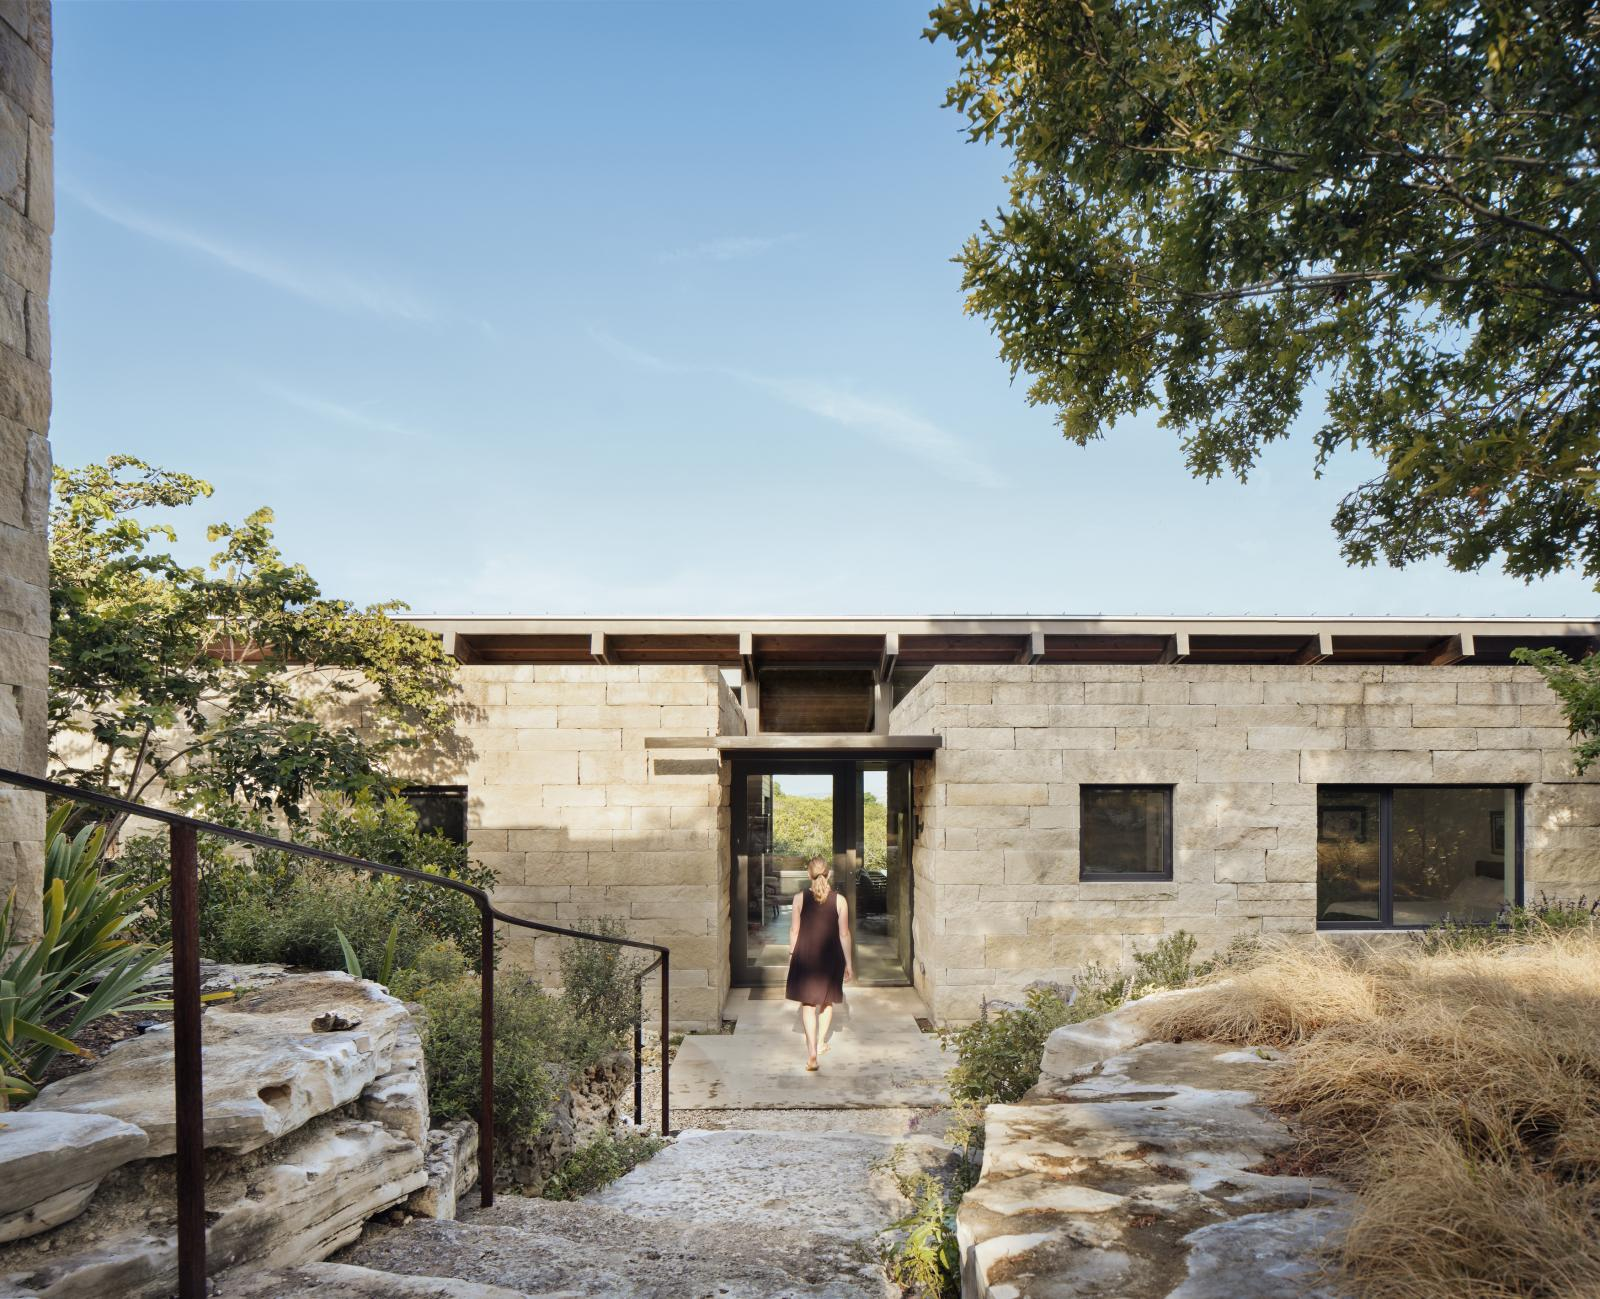 Canyon Preserve stair step down steep, rocky slopes of oaks and indigenous vegetation, creating a secluded and serene setting for this intimate house